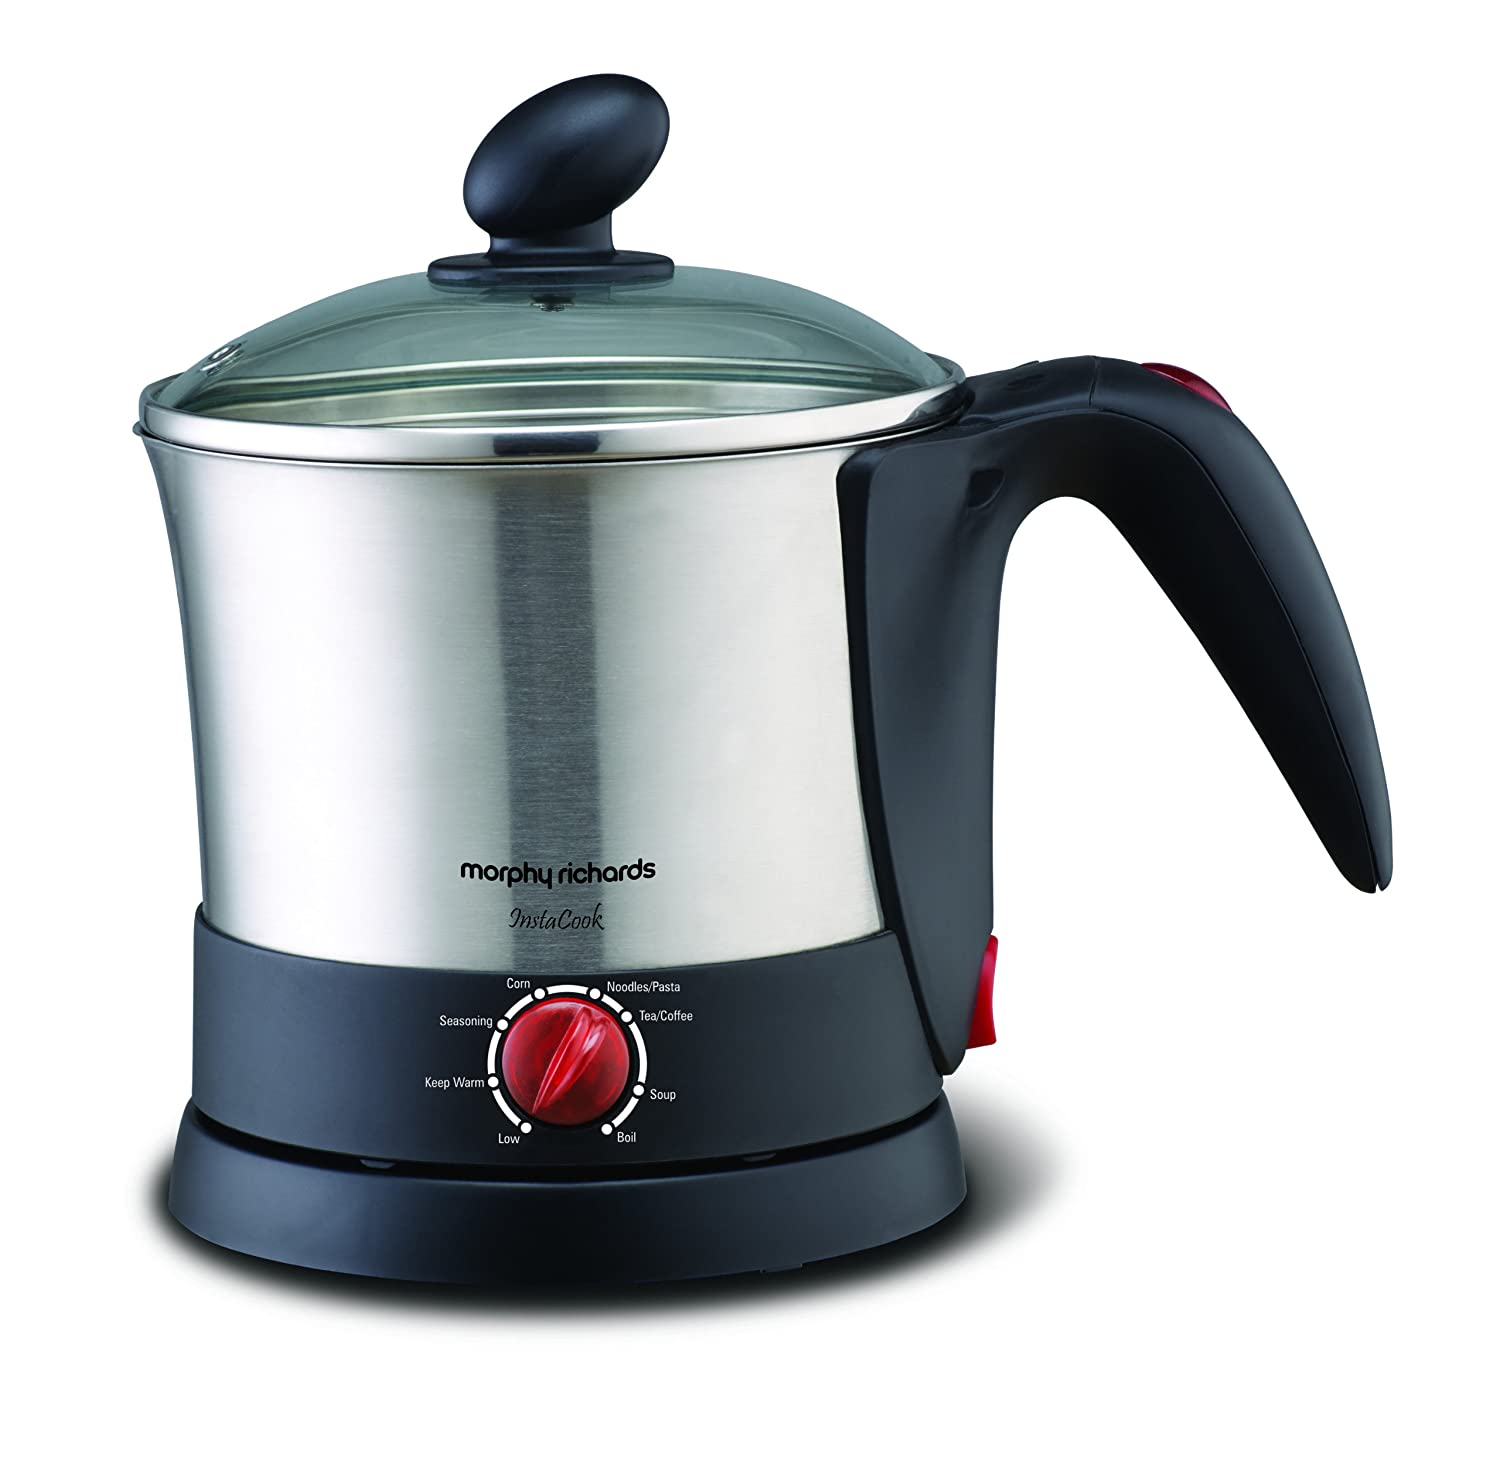 Morphy Richards InstaCook 1-Litre Stainless Steel Electric Kettle